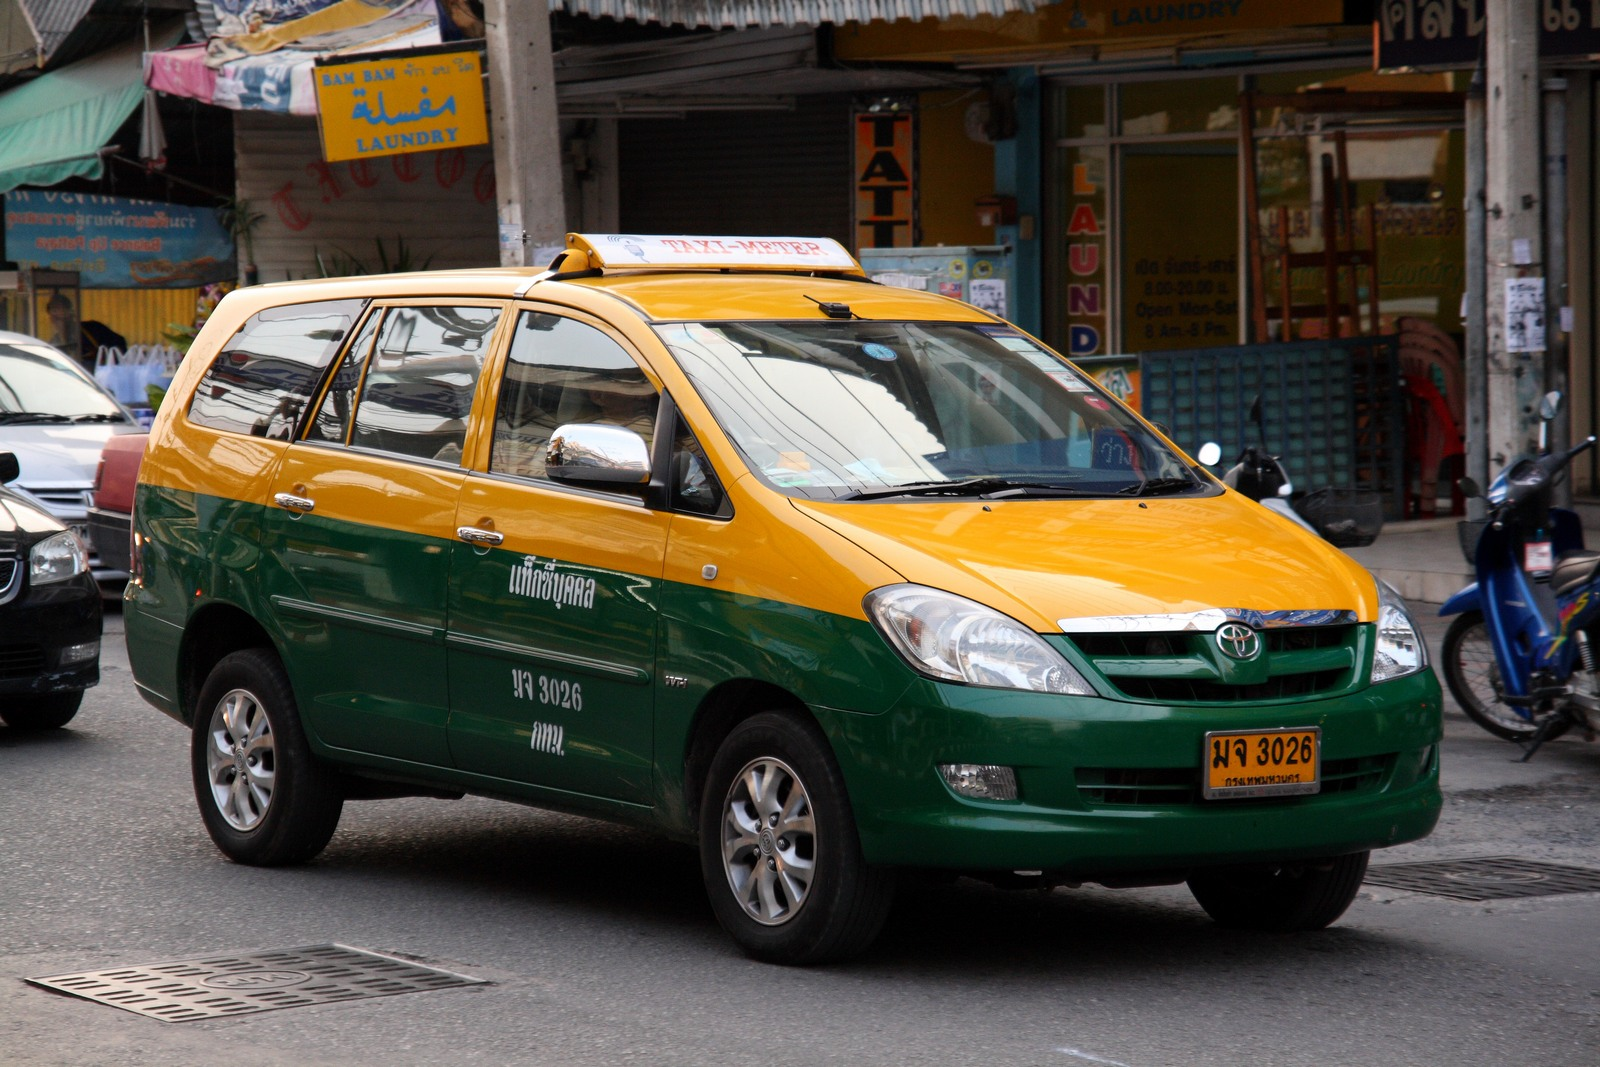 Taxi Meters Purchase : My filipino joke story the taxi driver — steemit